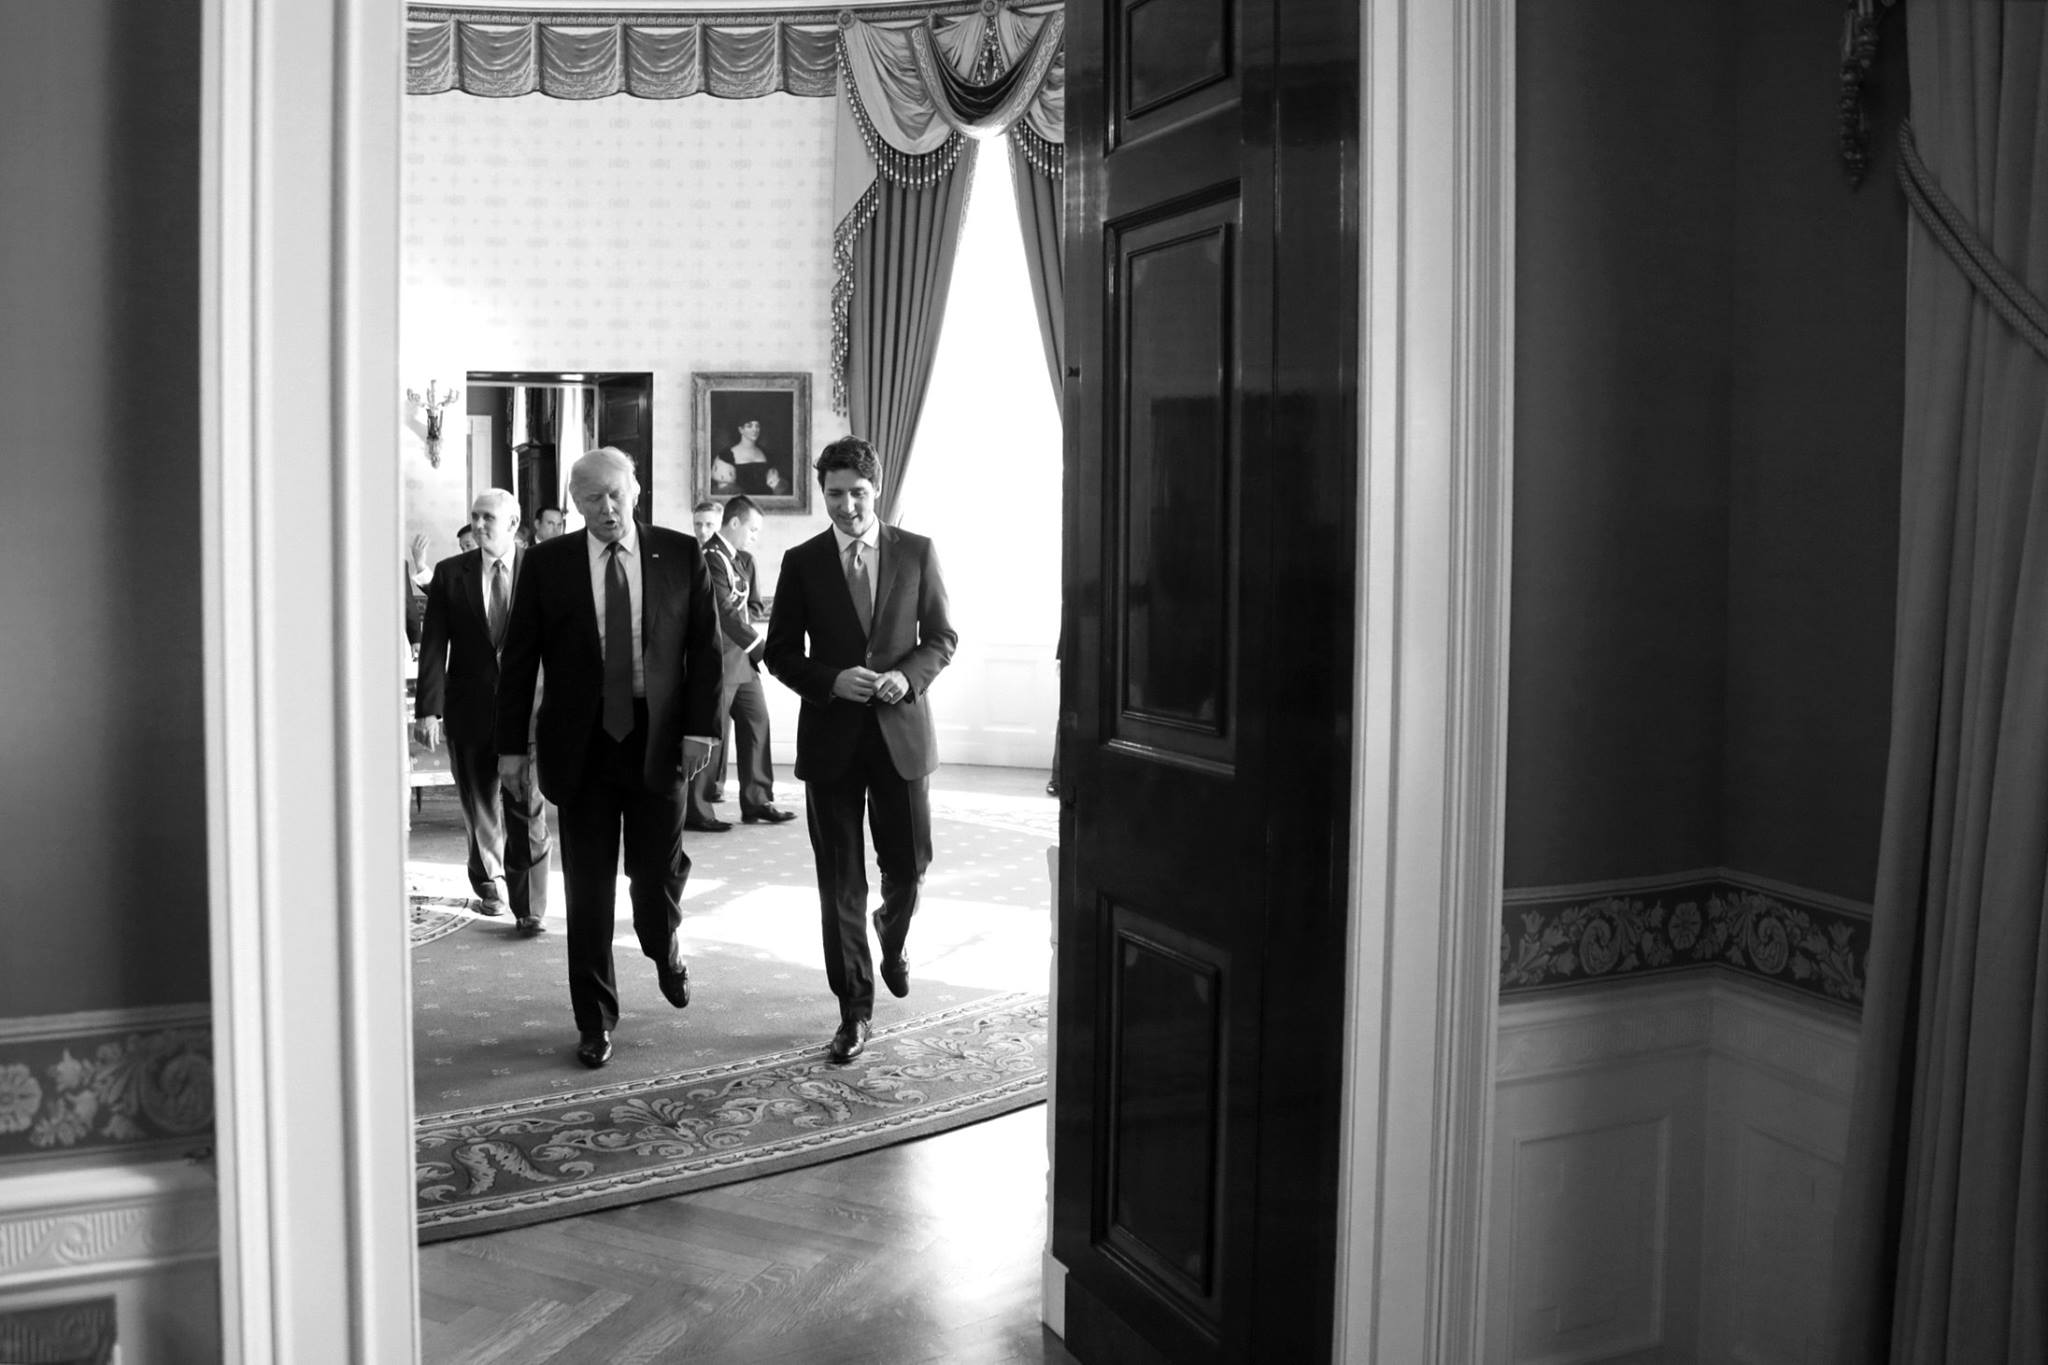 """""""We just had a very productive meeting with women business leaders from the United States and Canada, where we discussed how to secure everything that we know the full power of women can do better than anybody else,"""" Trump told a joint White House news conference with Trudeau as they wrapped up their first face-to-face meeting. (Photo: Justin Trudeau/ Facebook)"""